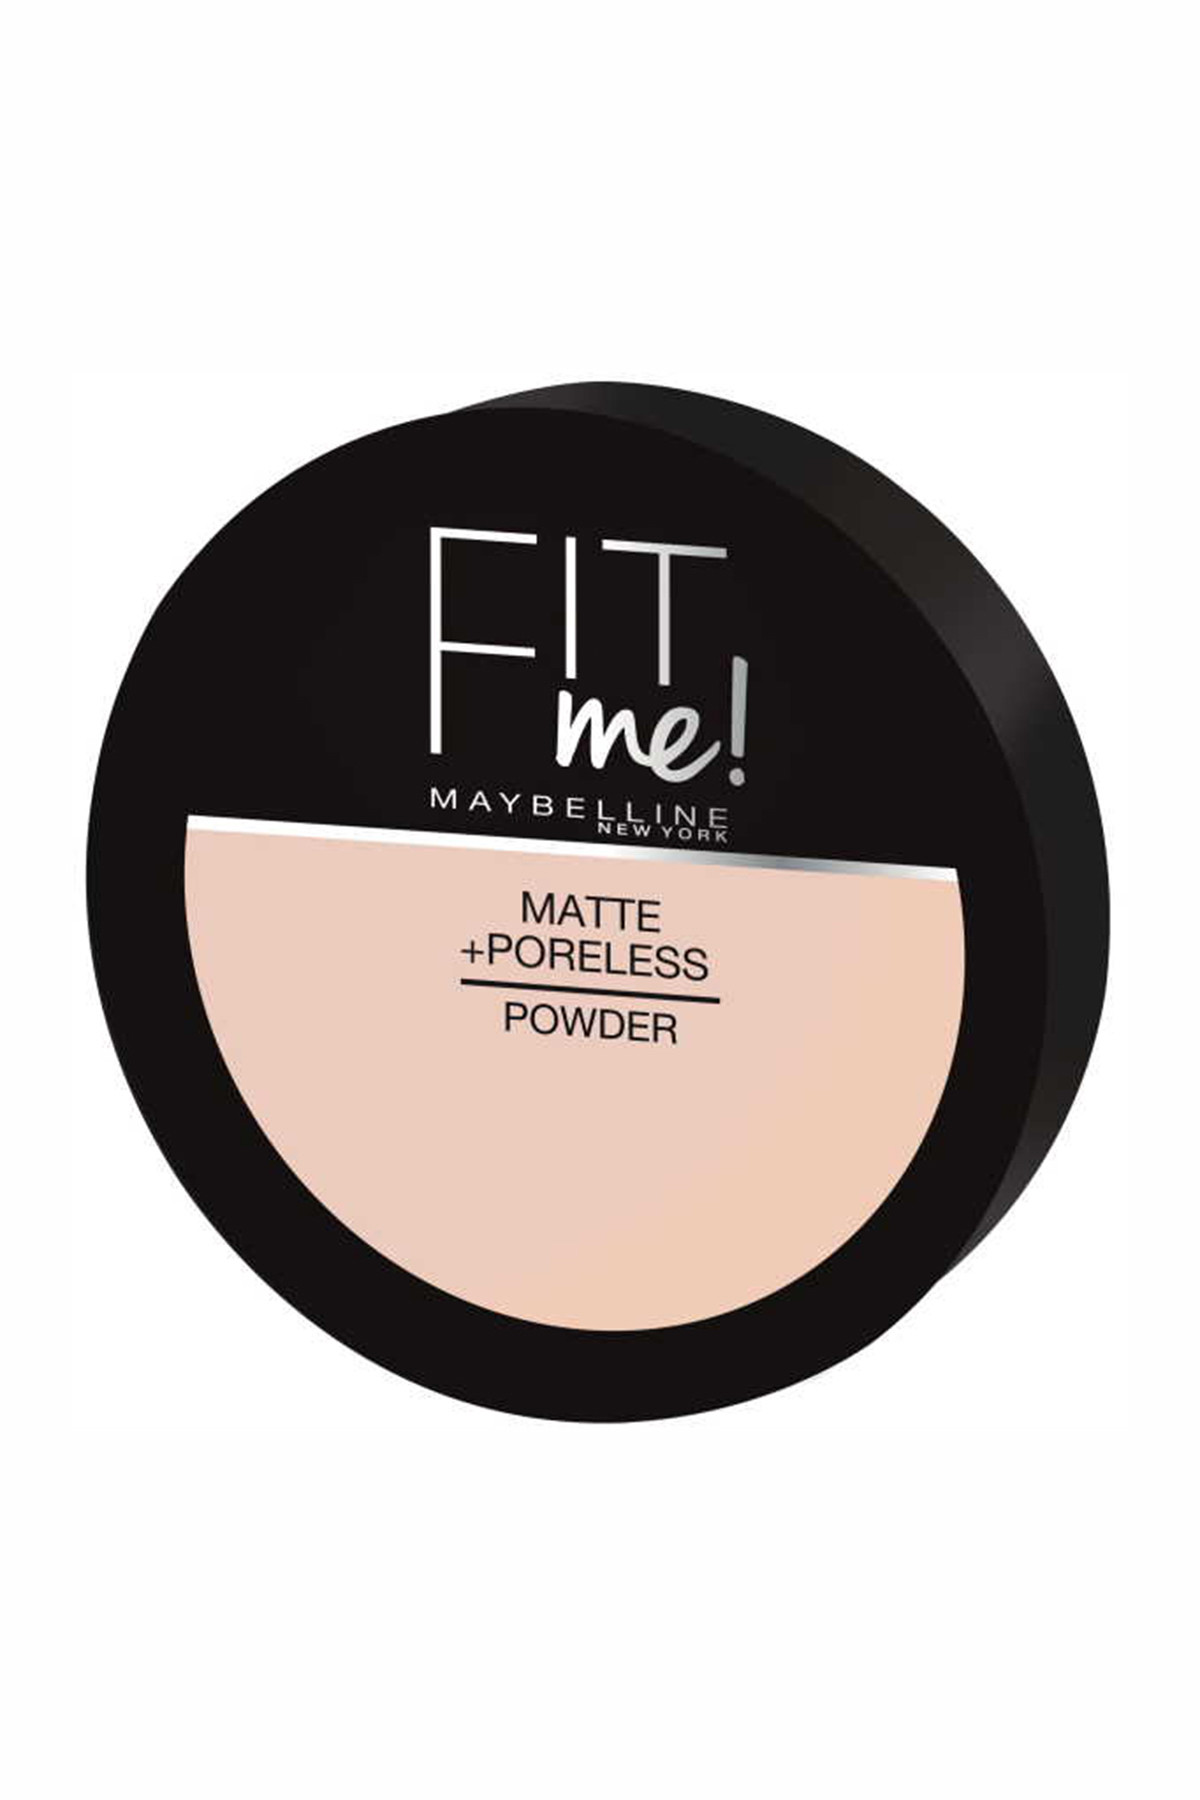 Maybelline New York Pudra – Fit Me Matte Poreless Powder 120 Classic Ivory 8992304057021 – 49.94 TL